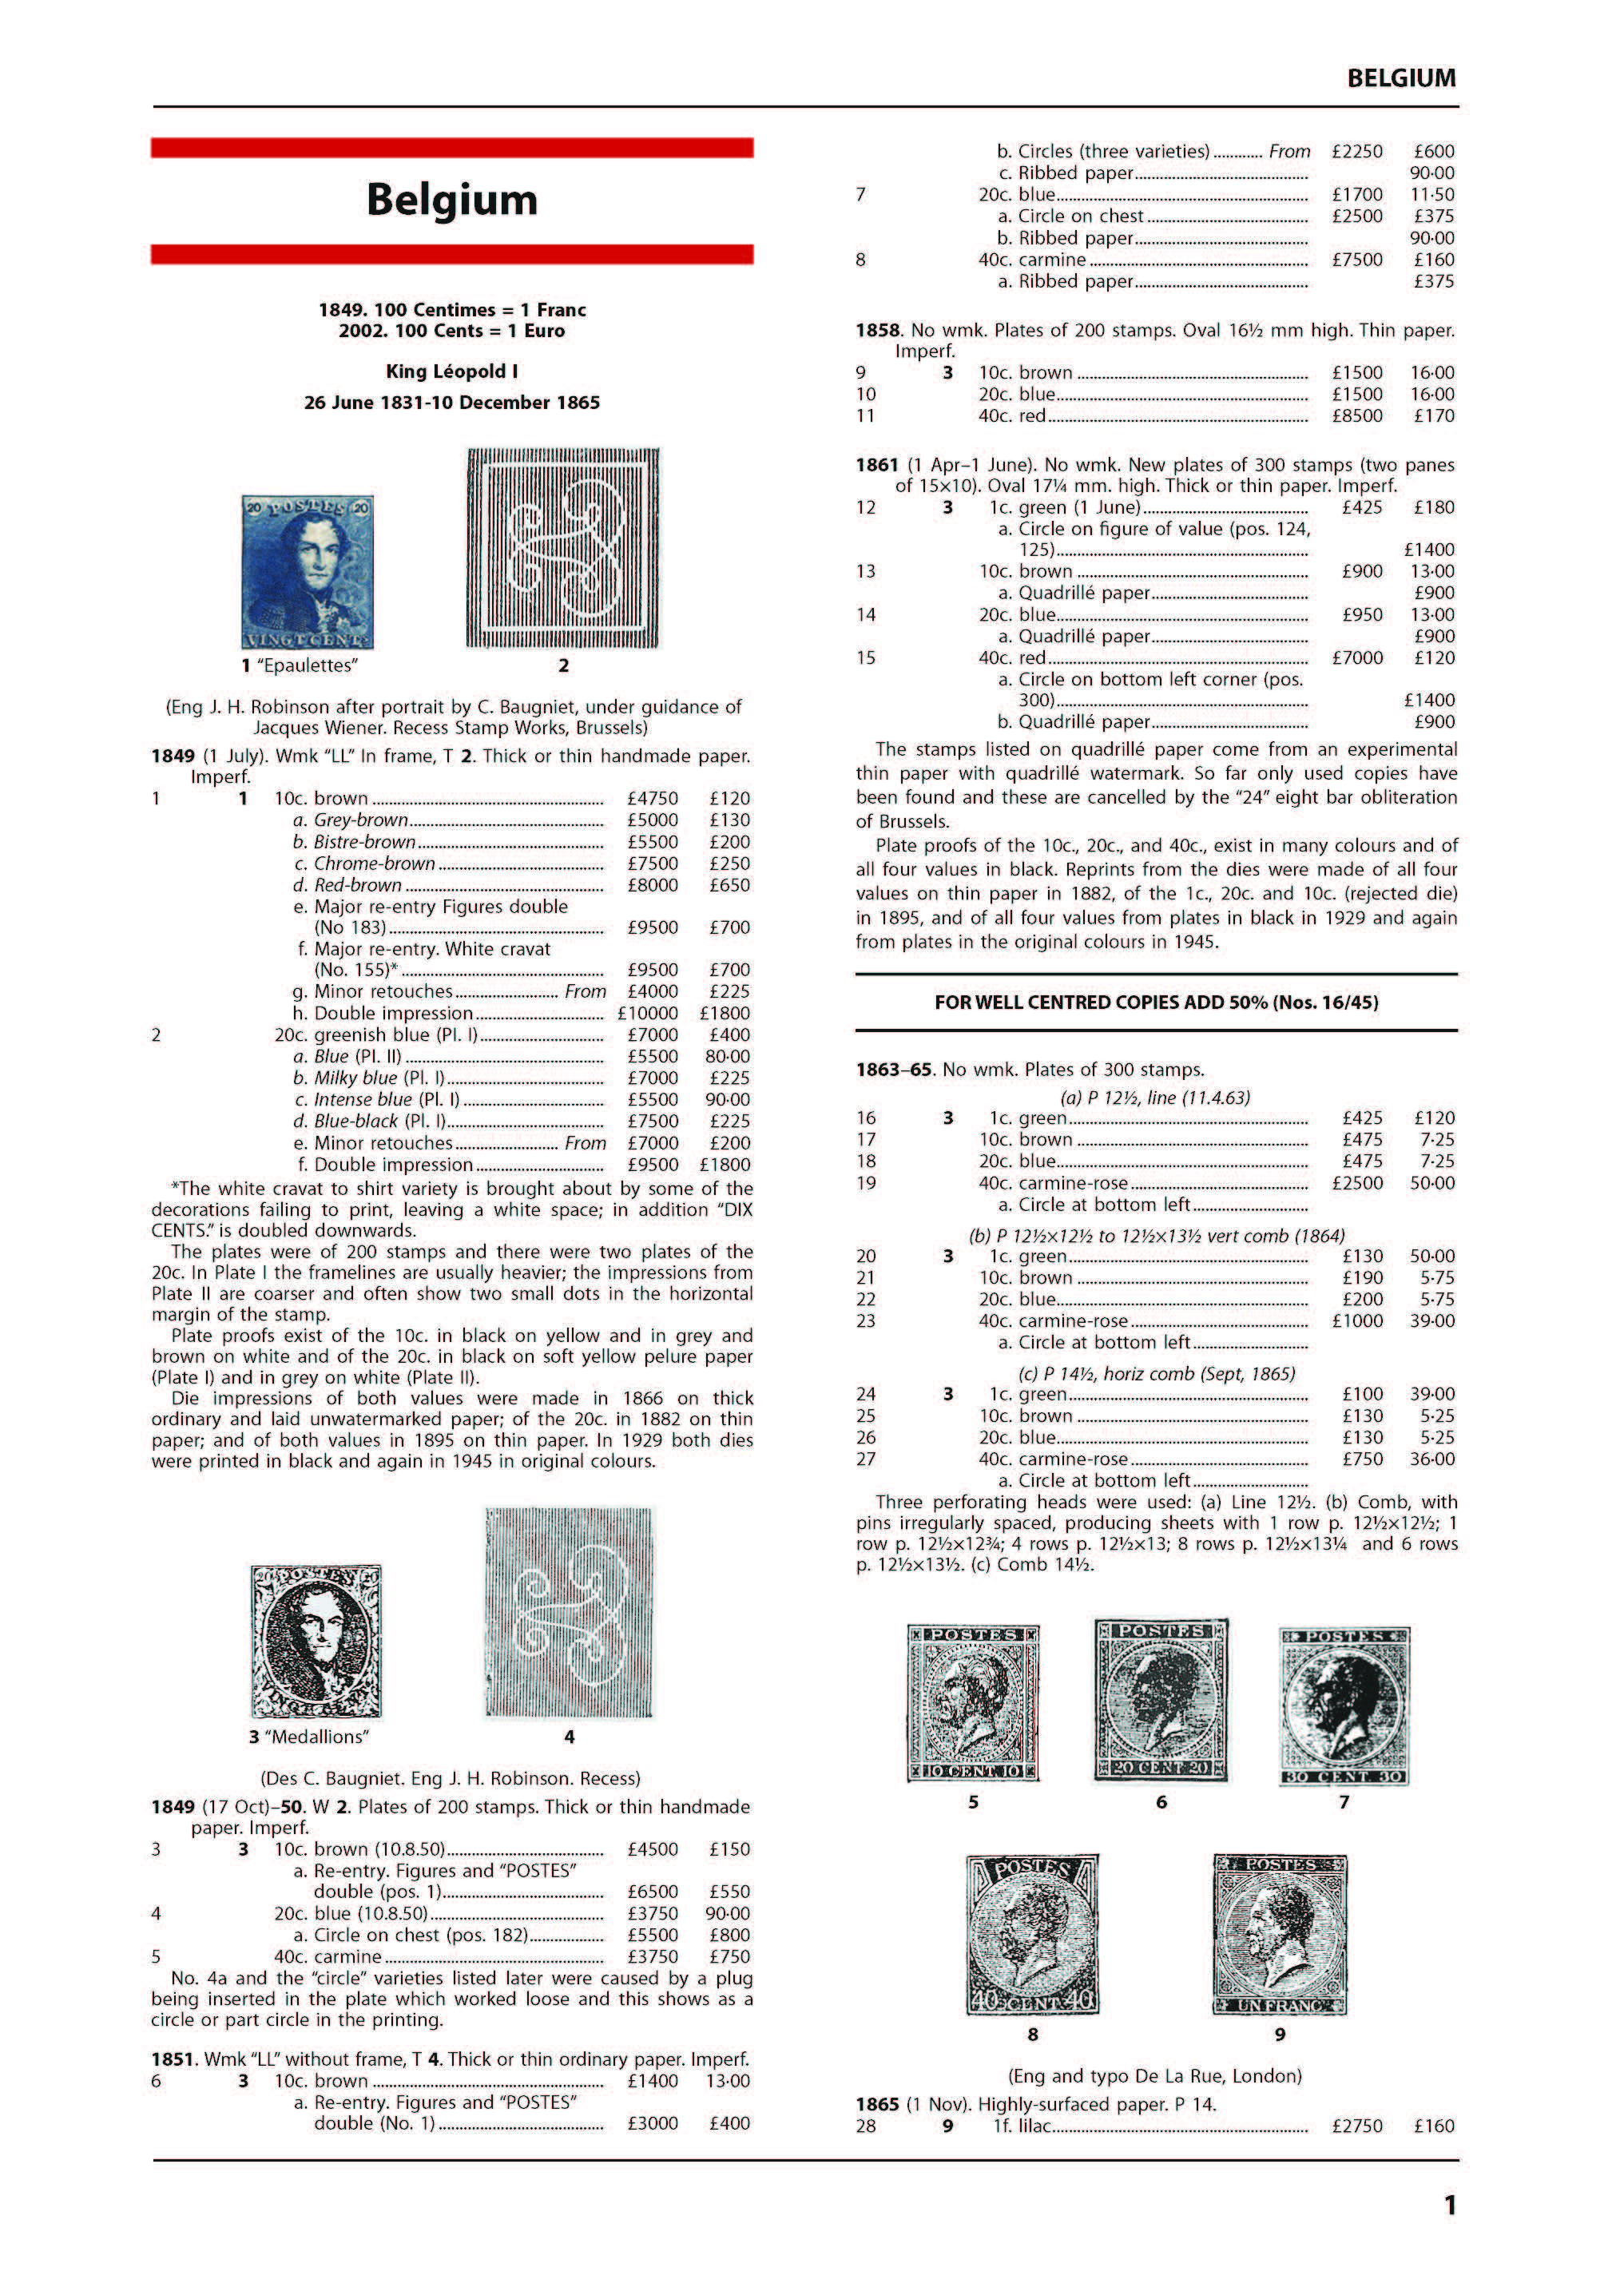 Belgium Stamp Catalogue 1st Edition